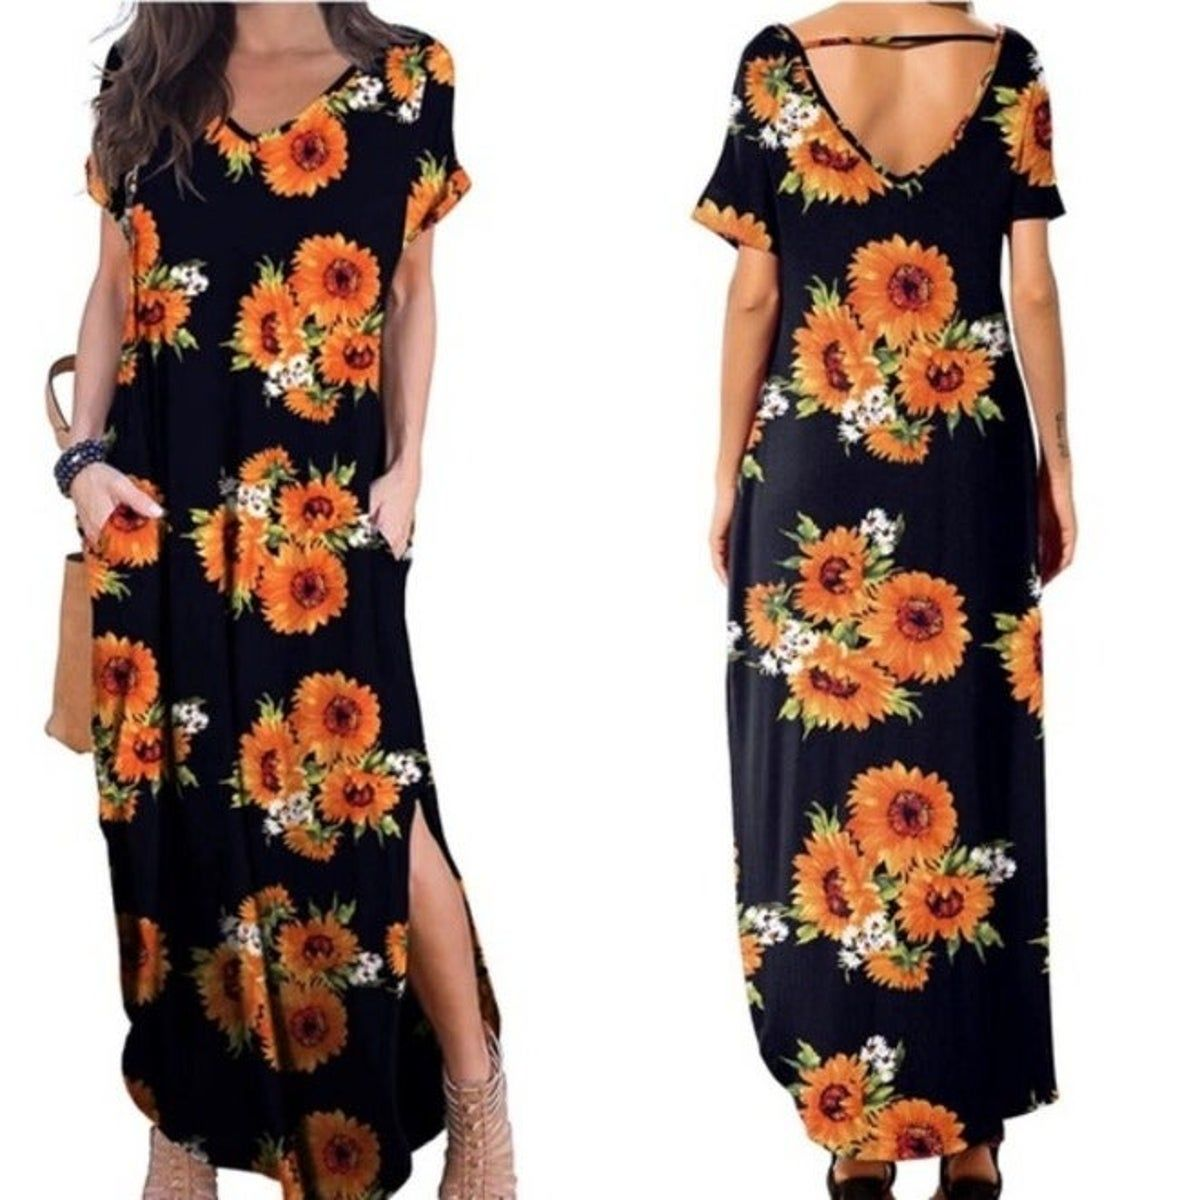 Pin By Deanna Powers On Clothing Maxi Dress Floral Dress Outfits Dresses [ 1200 x 1200 Pixel ]